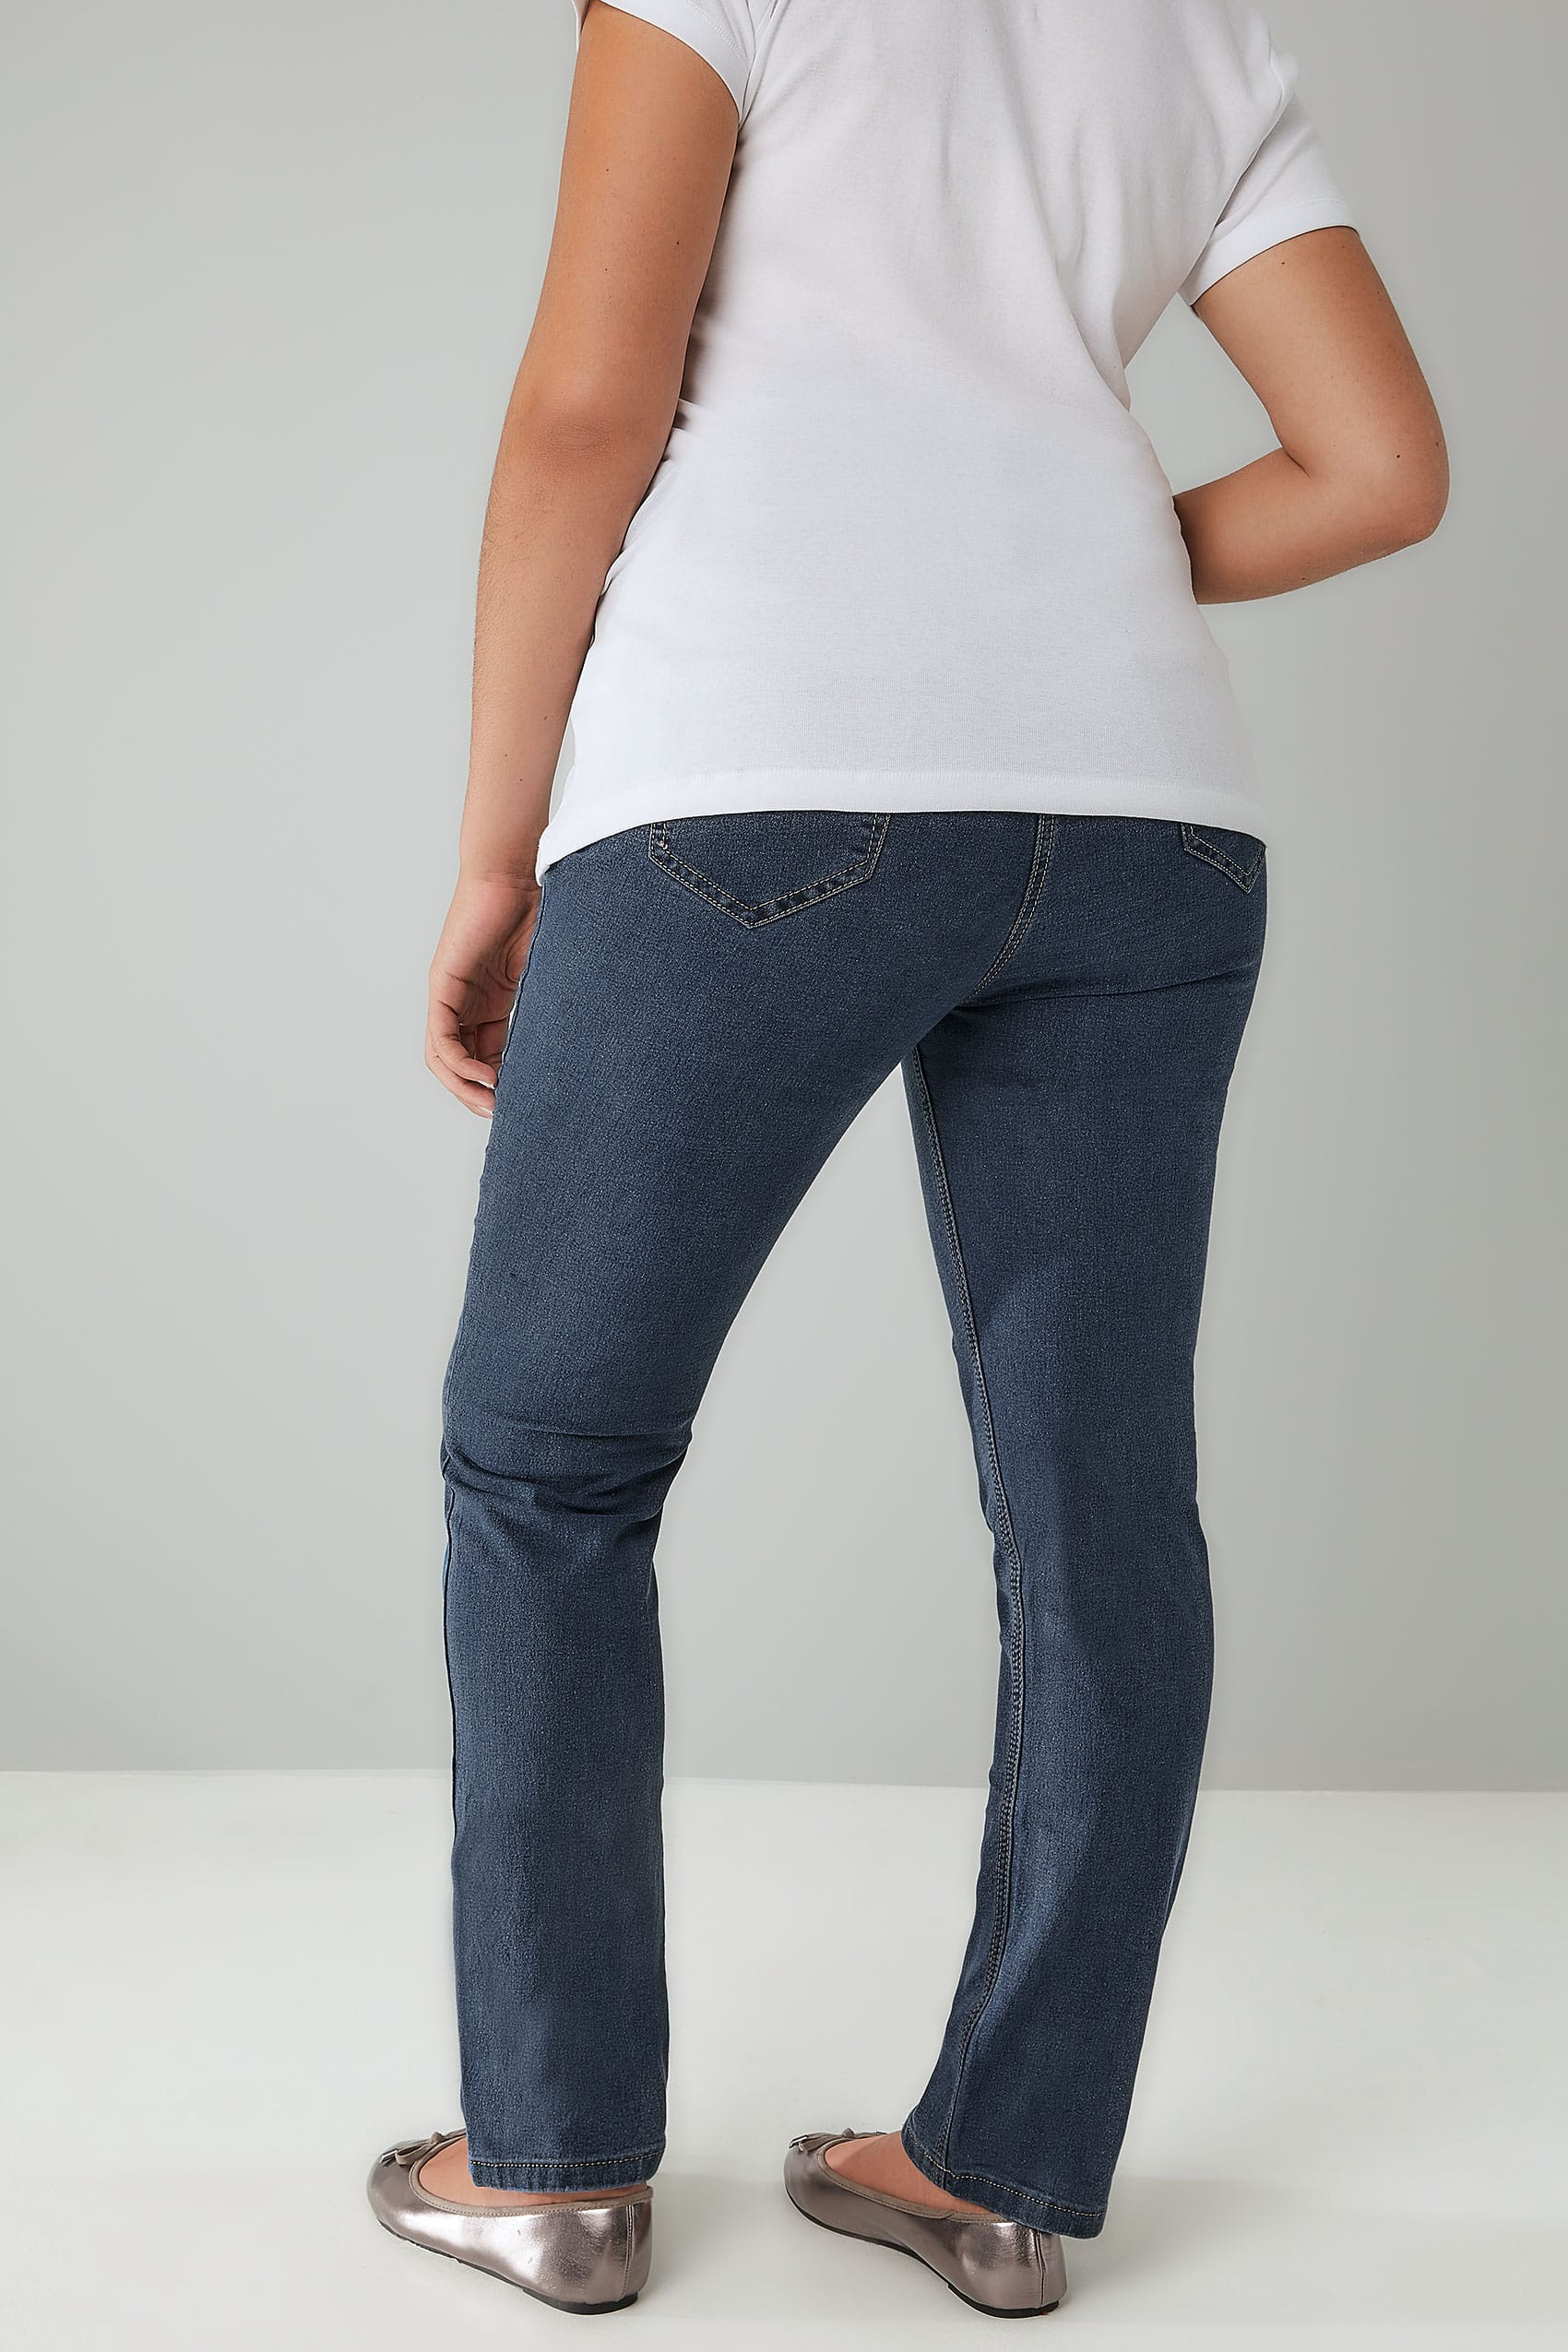 Blue Vintage Wash Straight Leg Ruby Jeans Plus Size 16 To 30